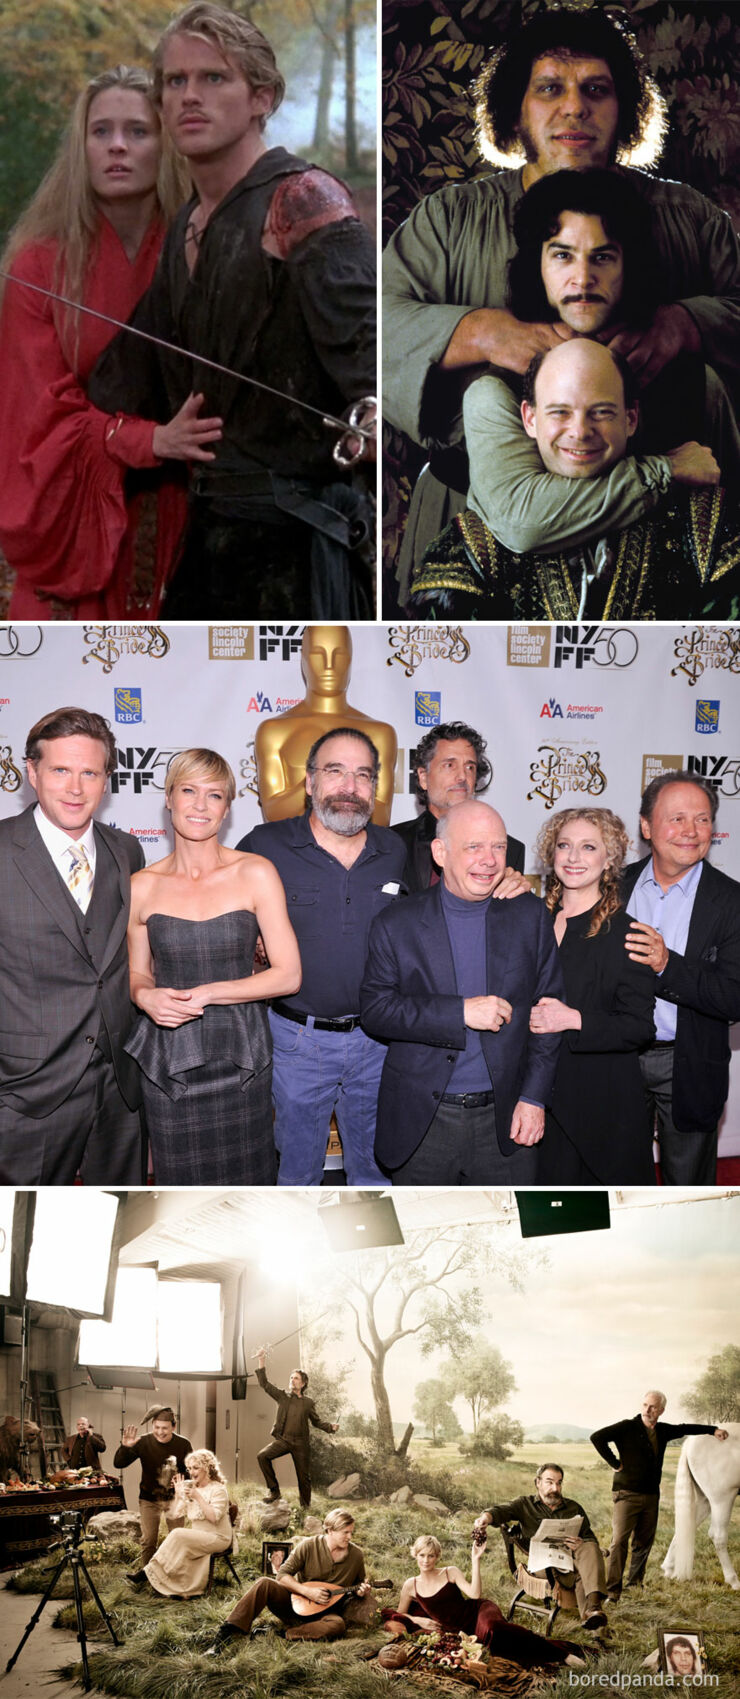 Tv & Movie Cast Reunions - The Princess Bride- 1987 Vs. 2012